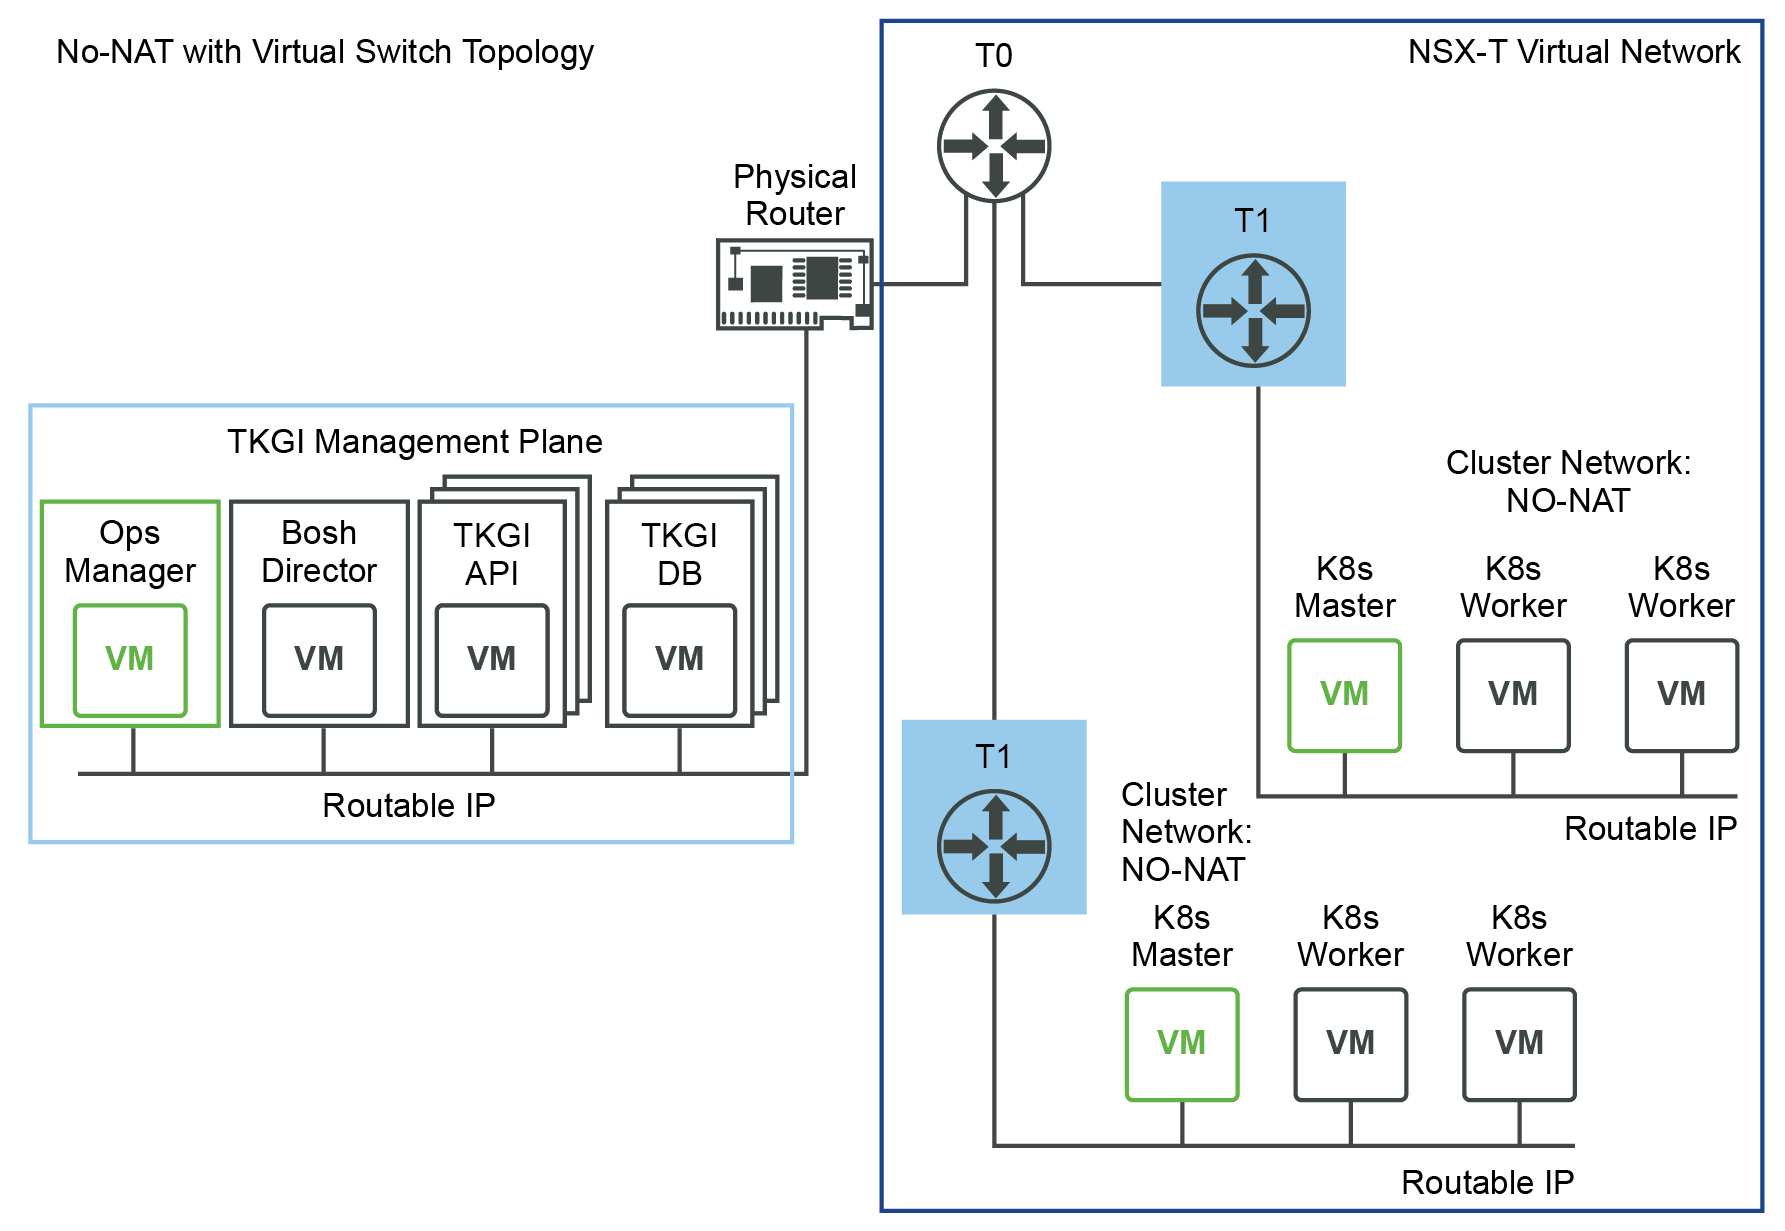 No-NAT Topology with Virtual Switch